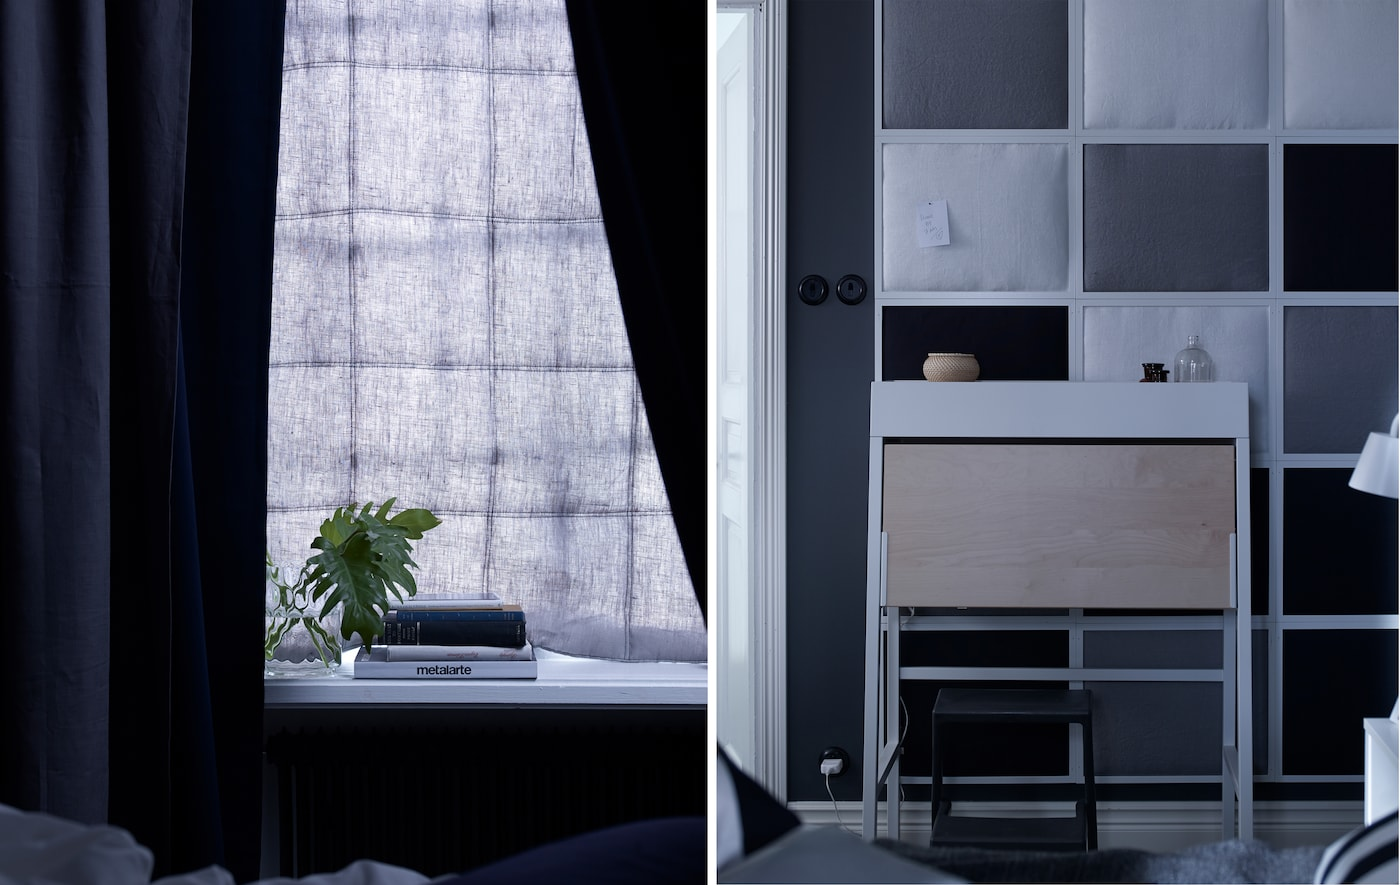 A curtain in front of a window, and a wall made from fabric-filled photo frames. Both are examples of bedroom soundproofing.